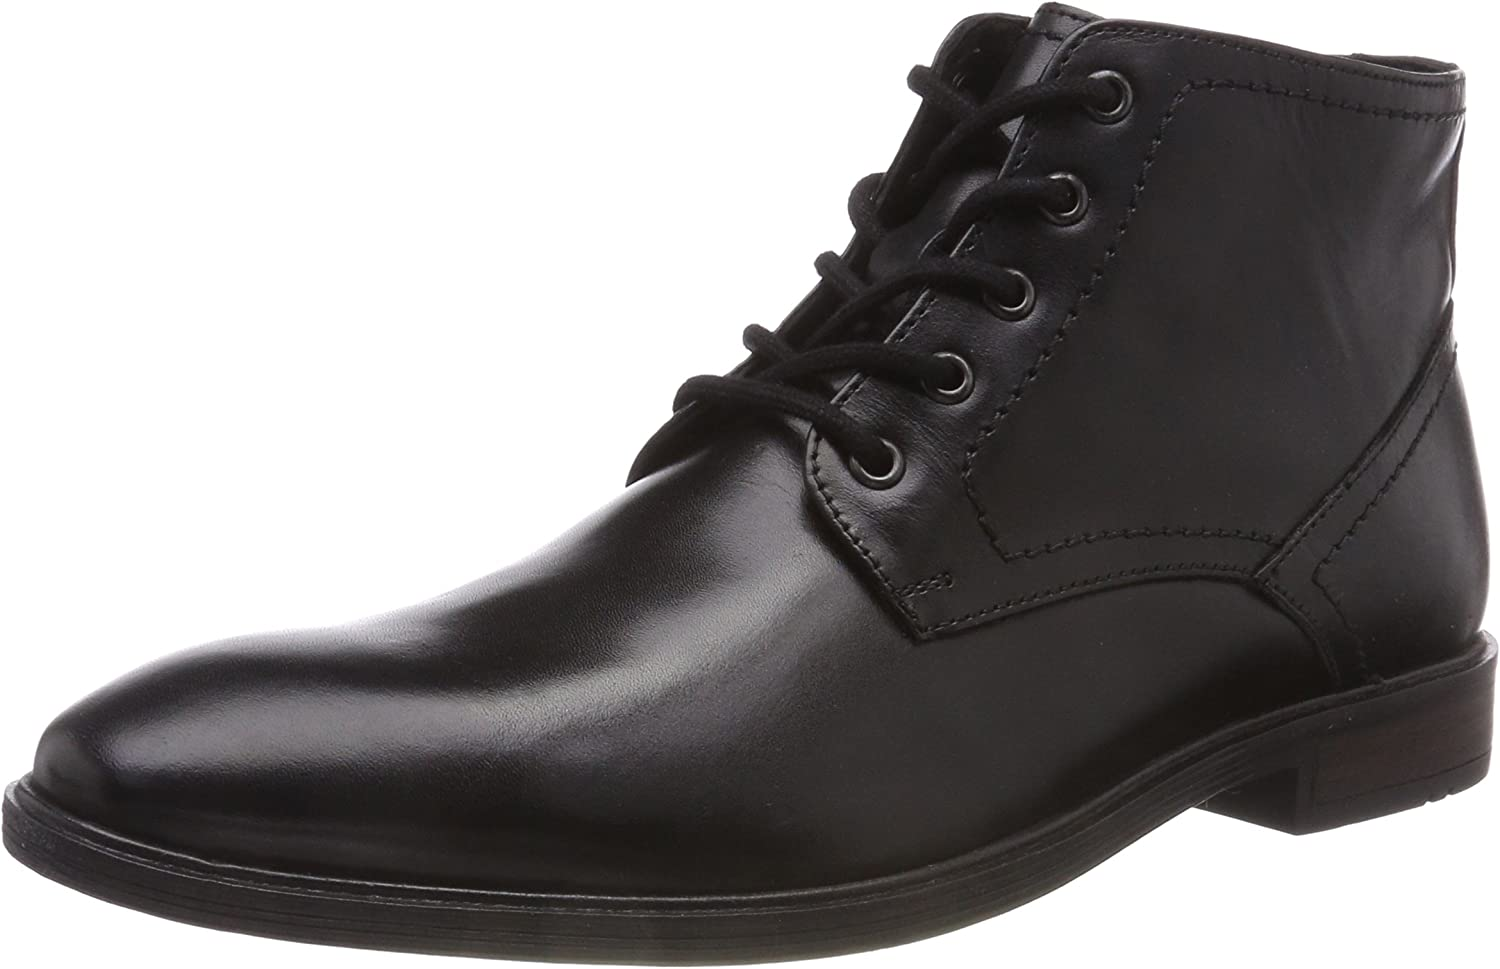 Josef Seibel Jonathan 06 Mens Leather Chukka Lace Up Zip Ankle Boots